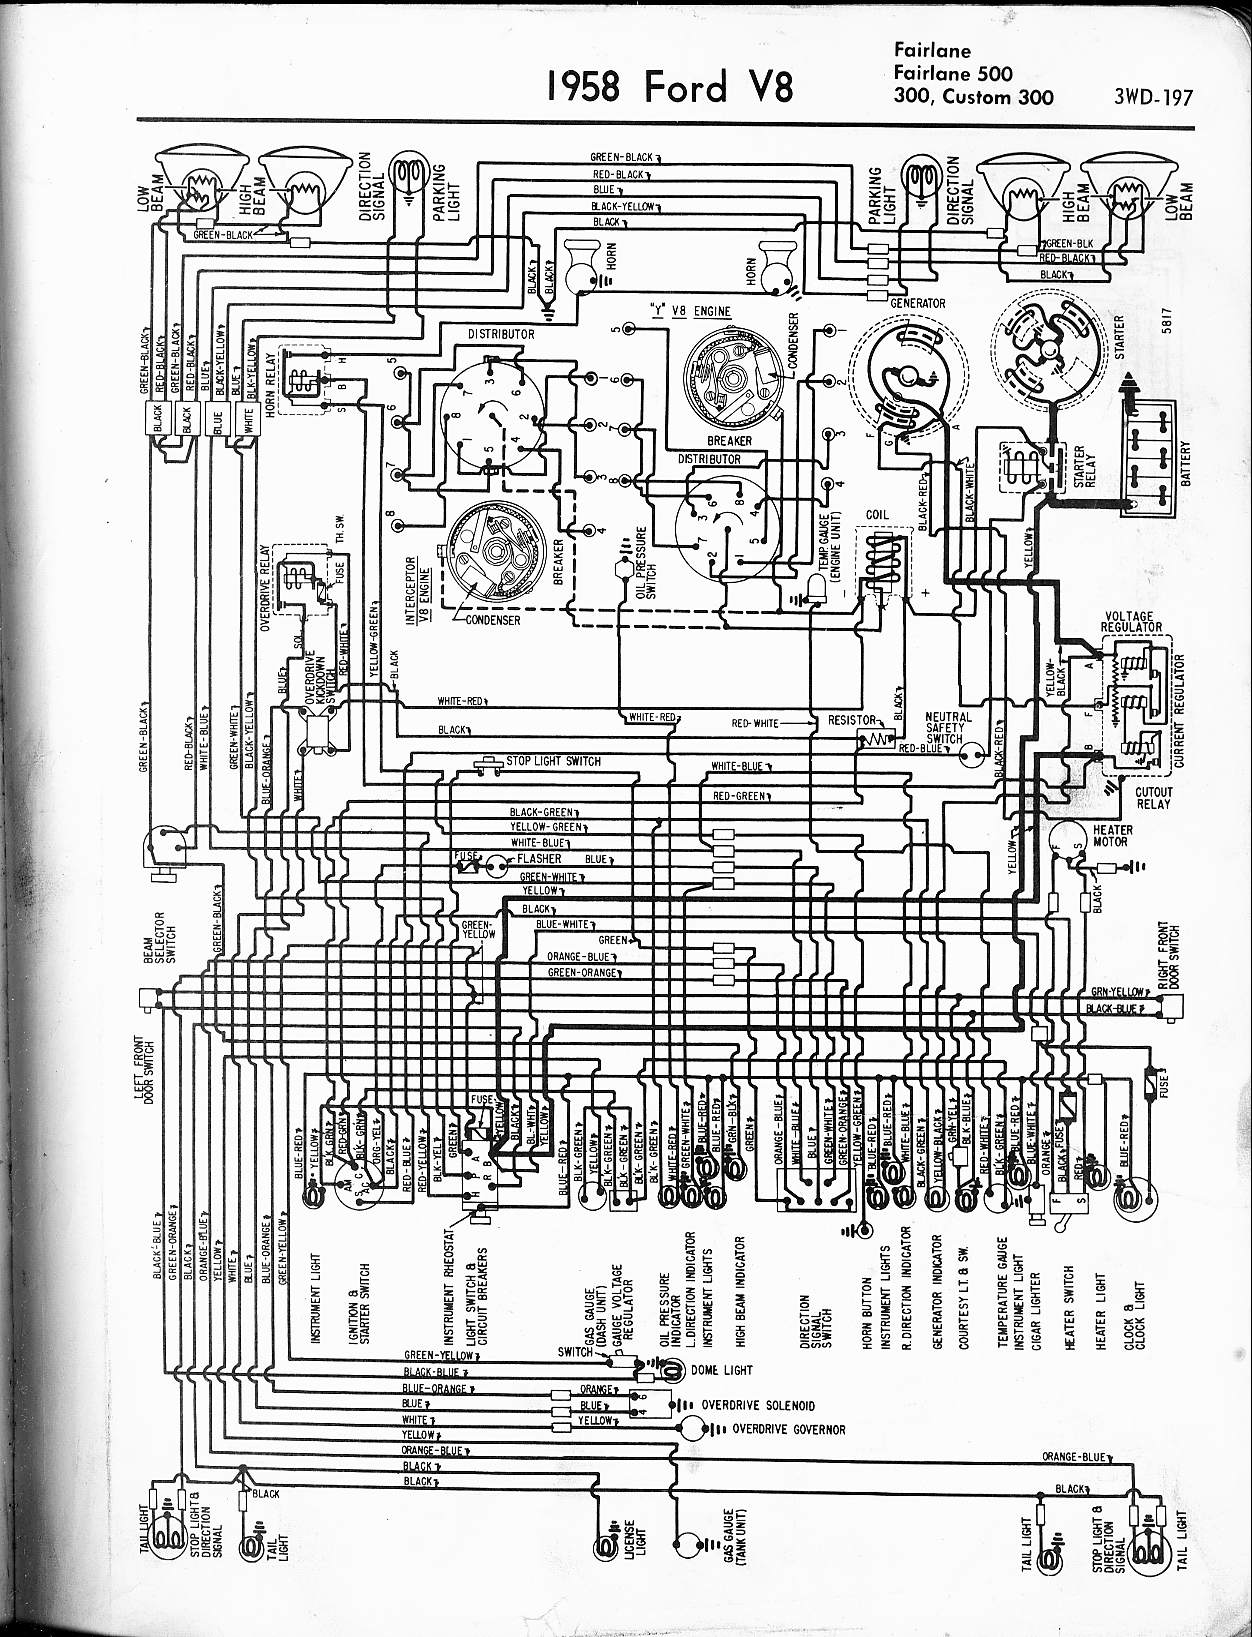 MWire5765 197 ford wiring diagrams online ford wiring diagrams instruction ford wiring diagrams at creativeand.co